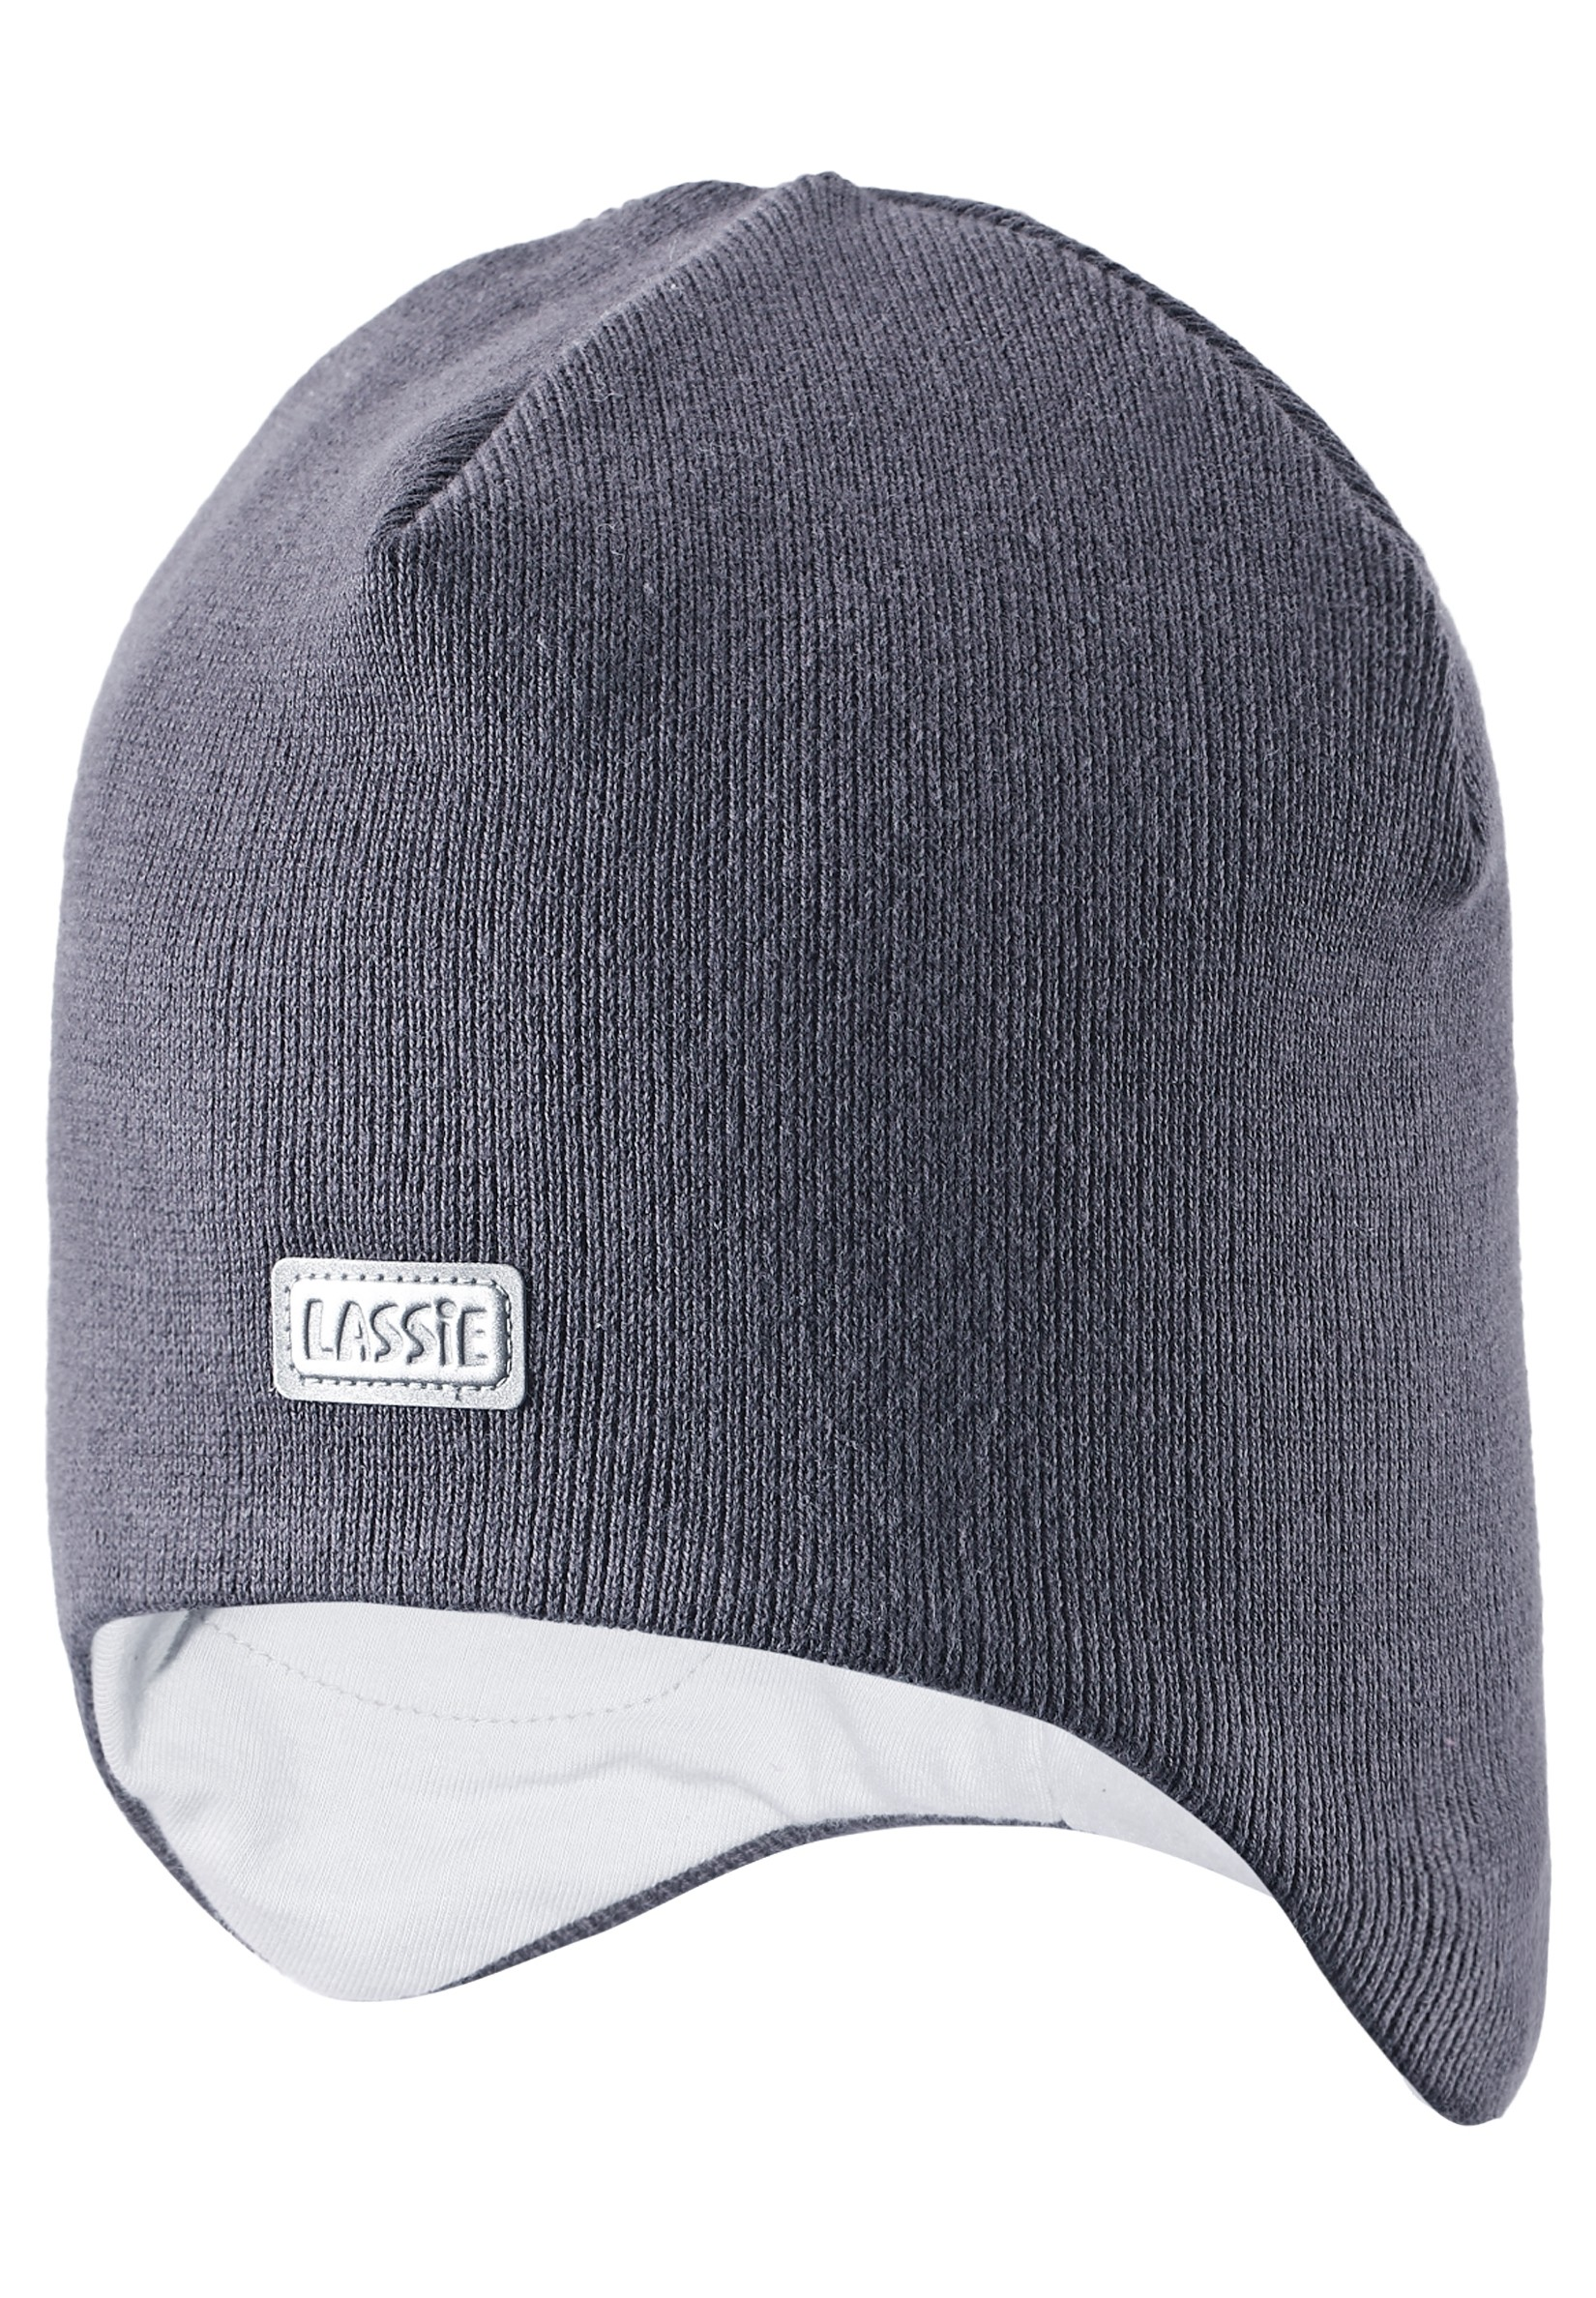 Головные уборы Lassie Шапка для мальчика Beanie dark grey, серая шапка marmot powderday beanie slate grey